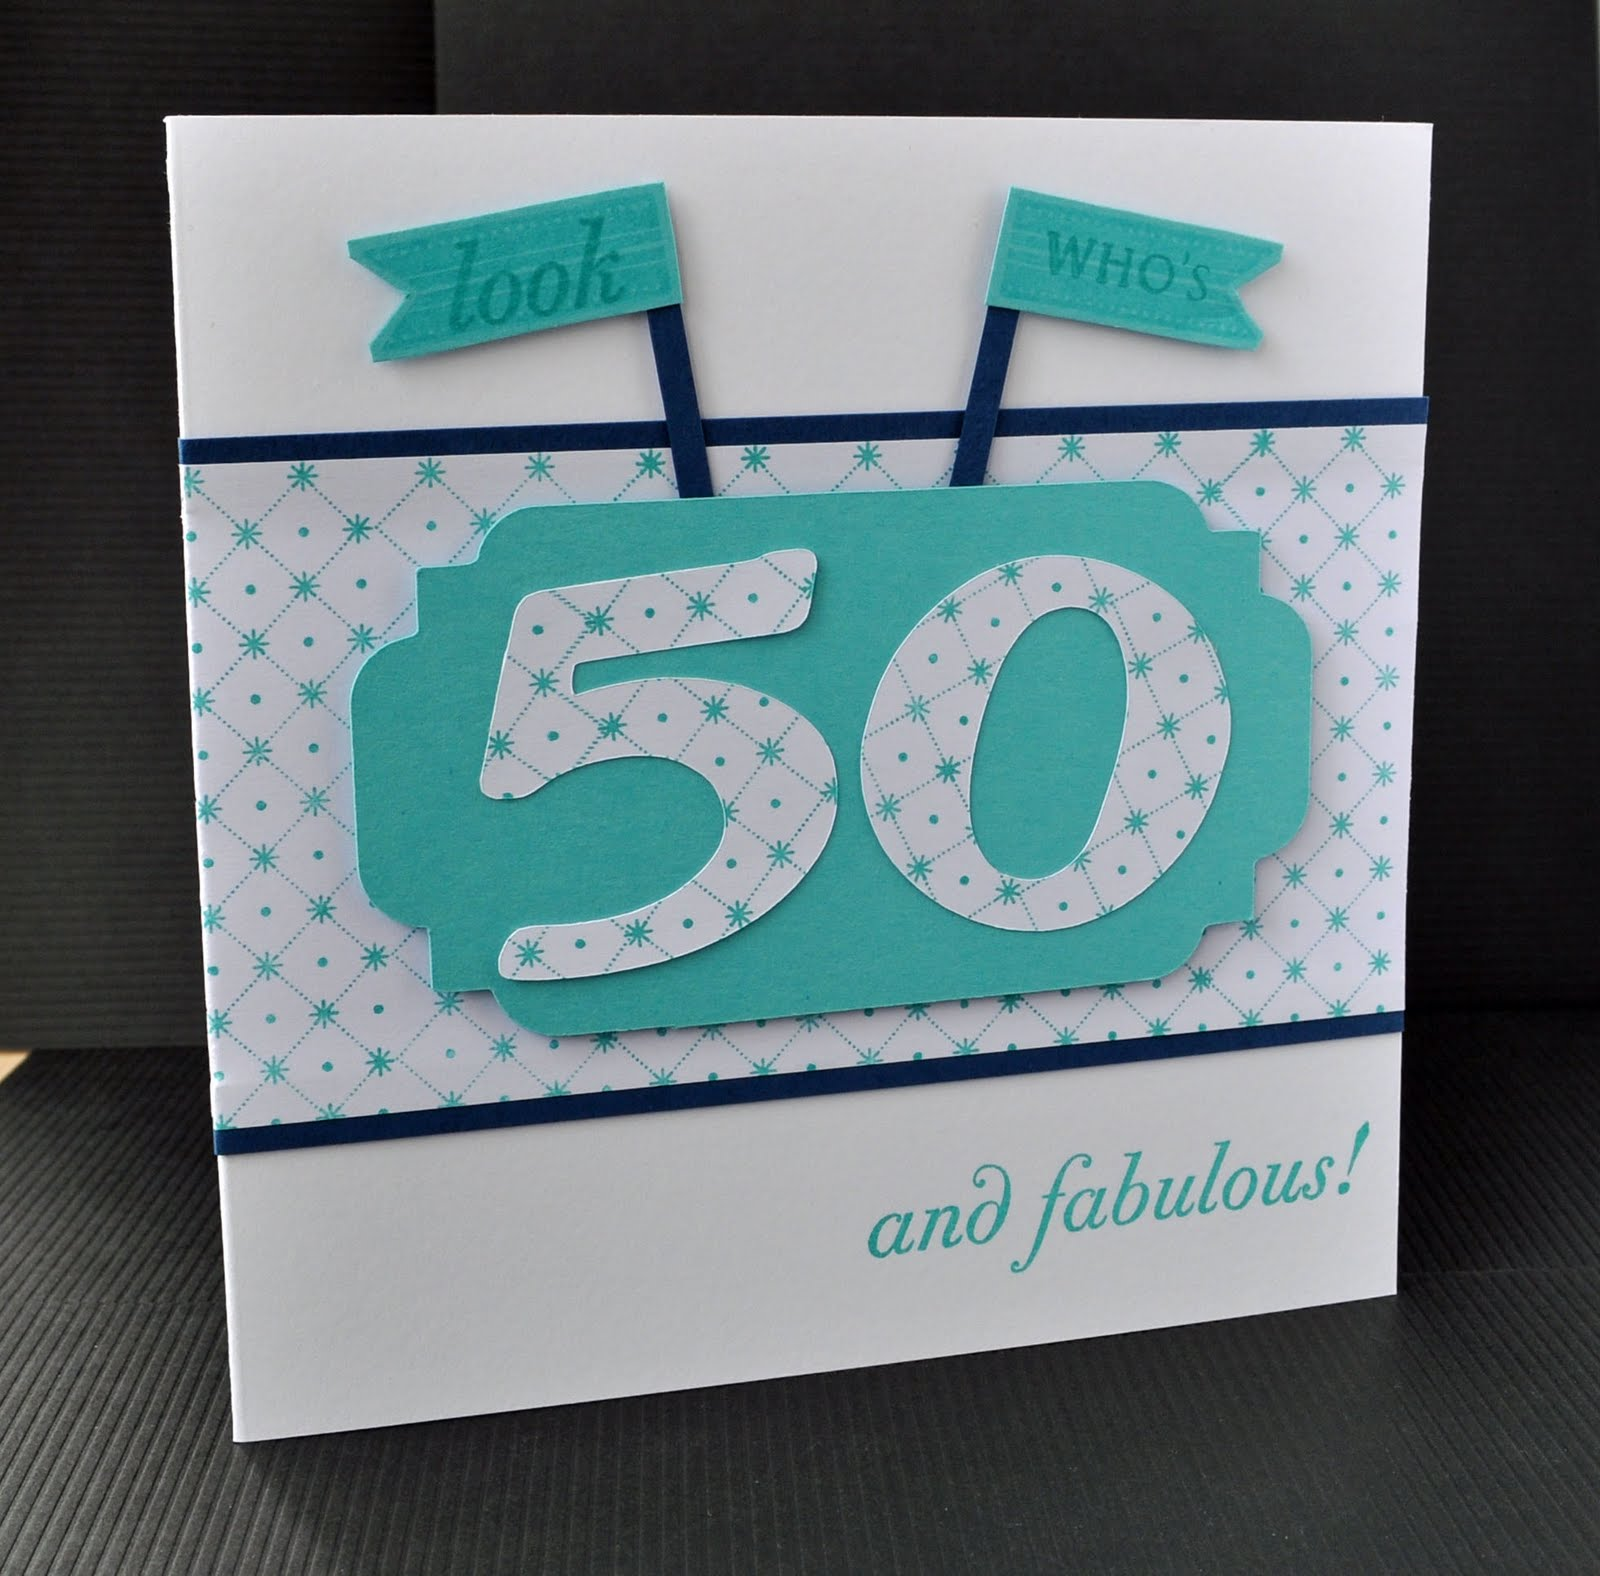 50th Birthday Cards Cricut: Inky Fingers: Cricut / Papertrey Ink Birthday Card And Ducks